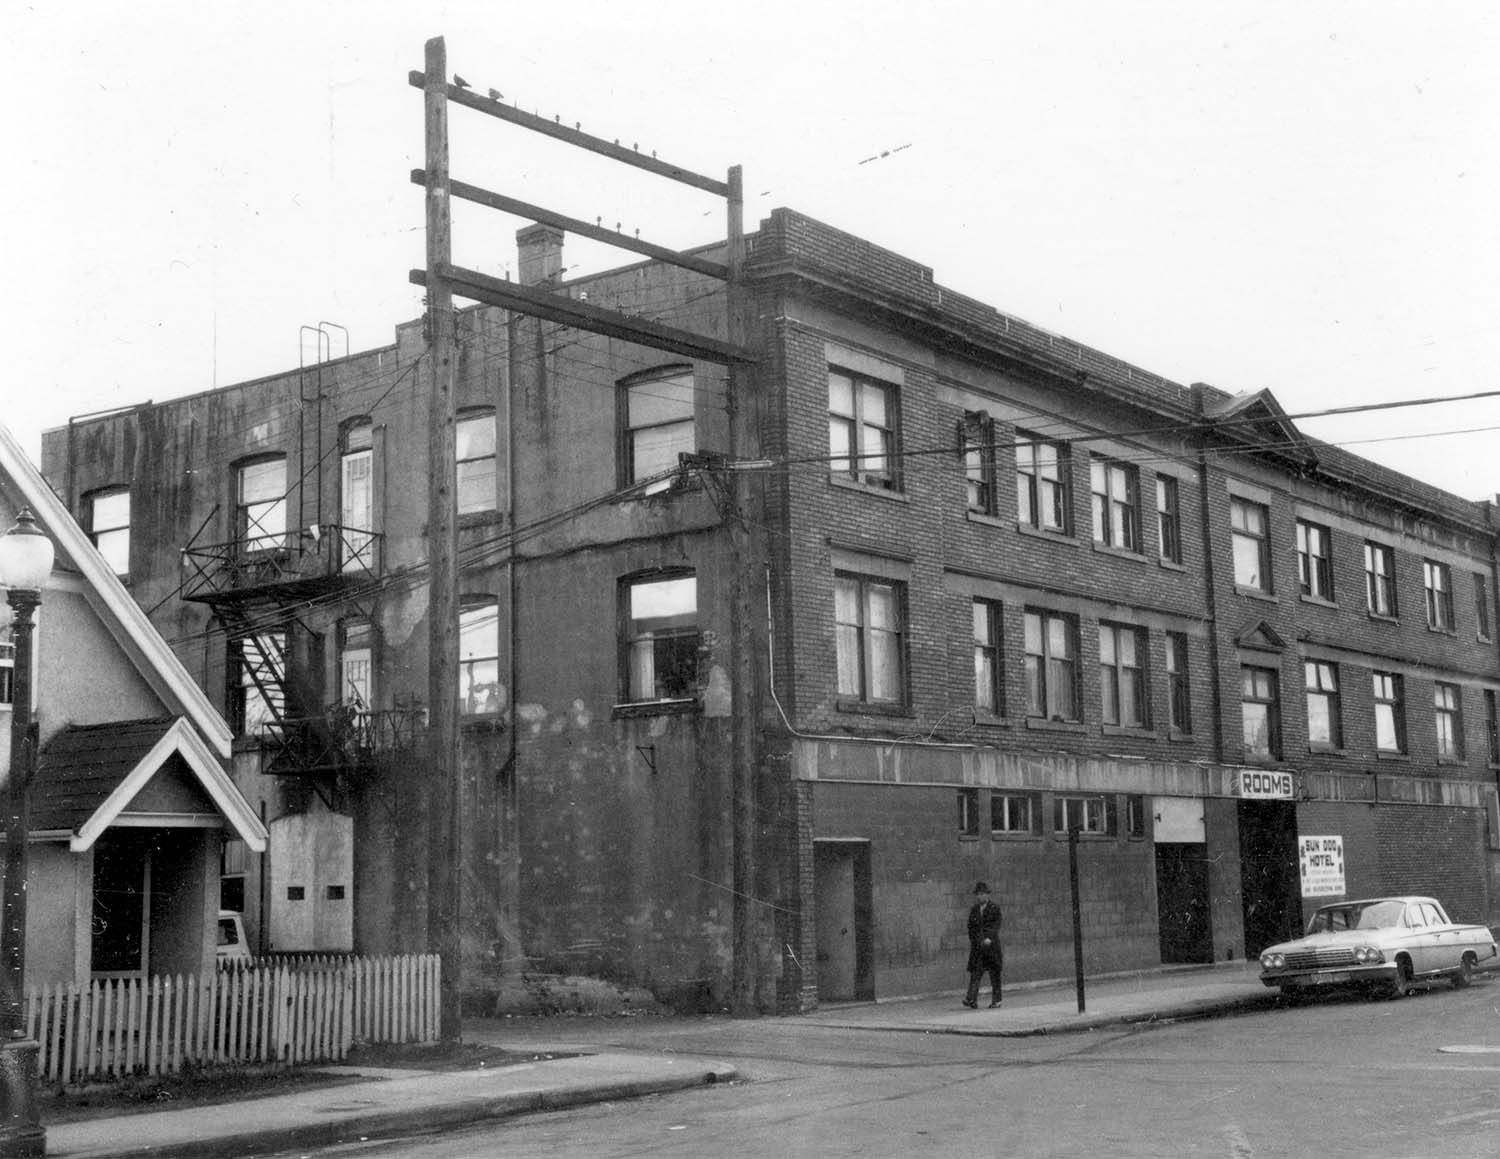 800 - 804 Main Street, 1968. Photograph shows the back of the building and 208 - 214 Union Street. Reference code COV-S168-: CVA 203-11